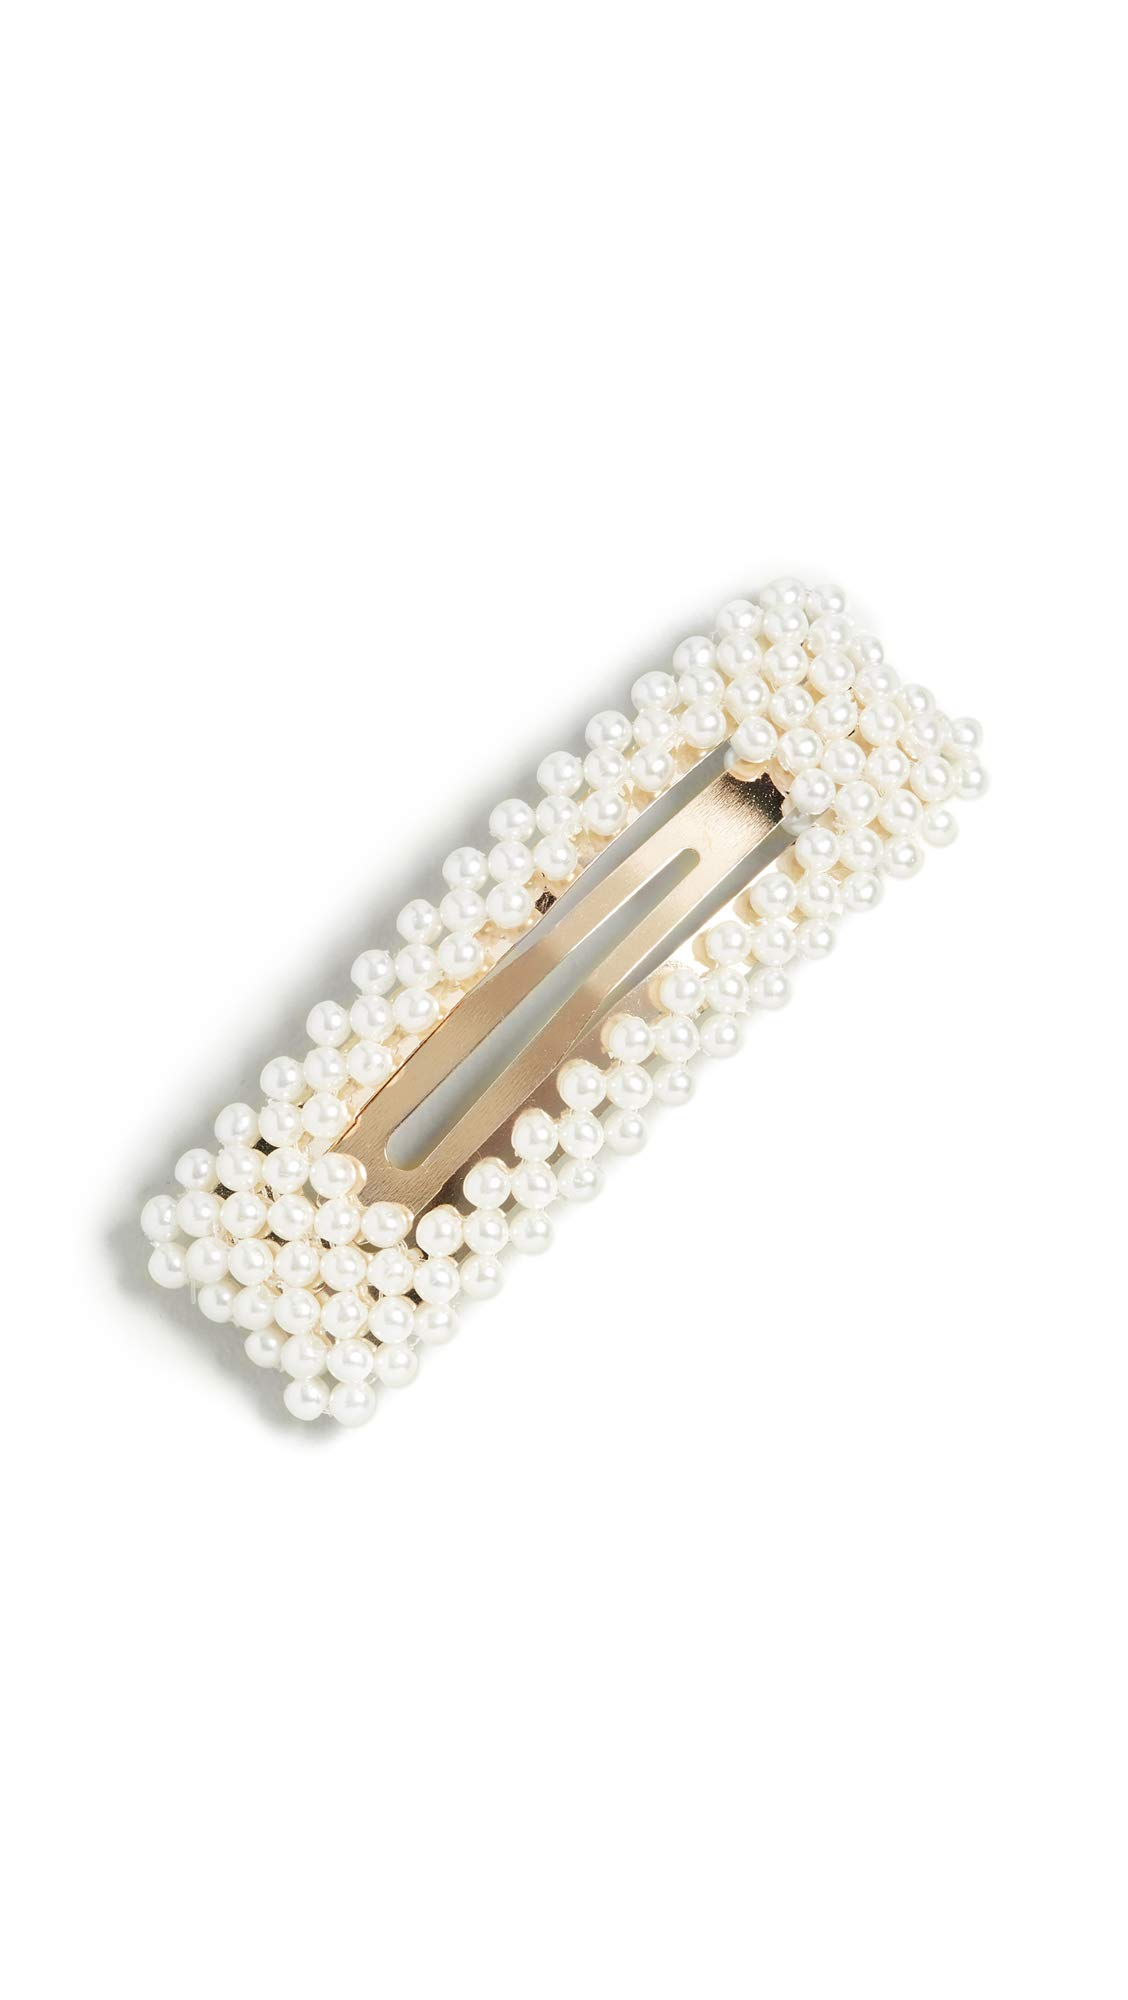 Jennifer Behr Women's Valerie Flip Clip, Pearl, Off White, One Size by Jennifer Behr